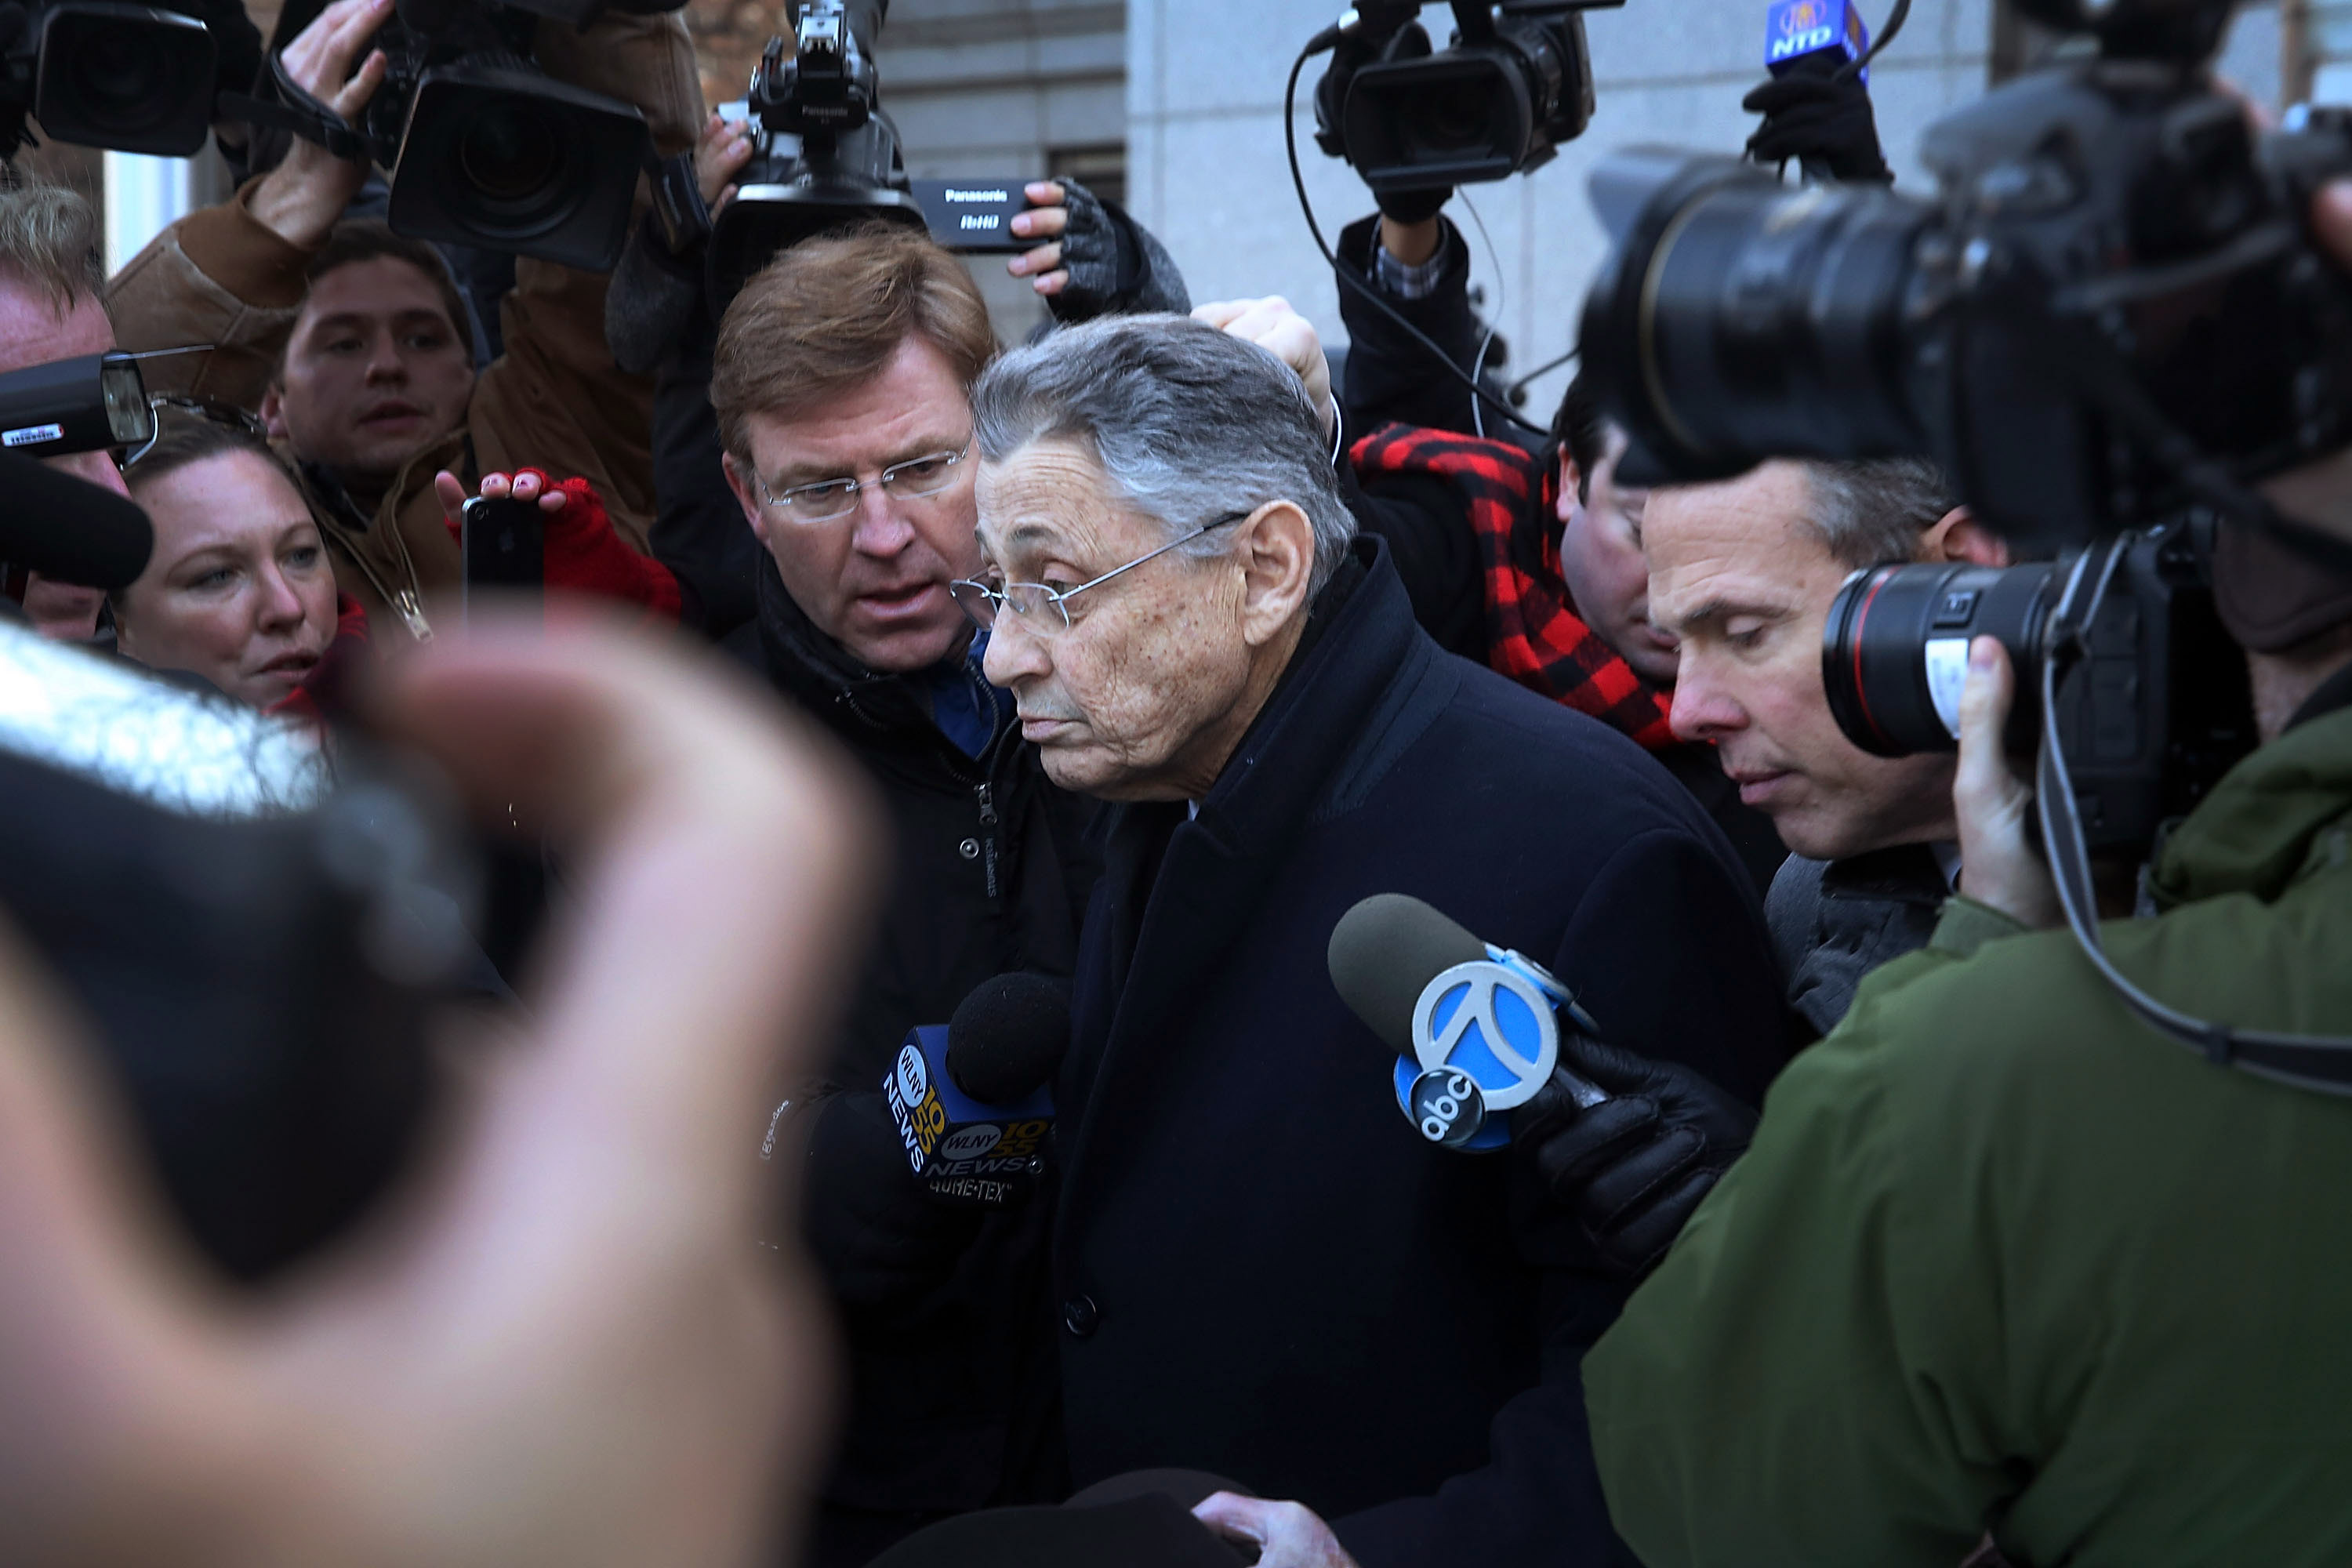 Assembly Speaker Sheldon Silver walking out of the federal courthouse today. (Photo by Spencer Platt/Getty Images)